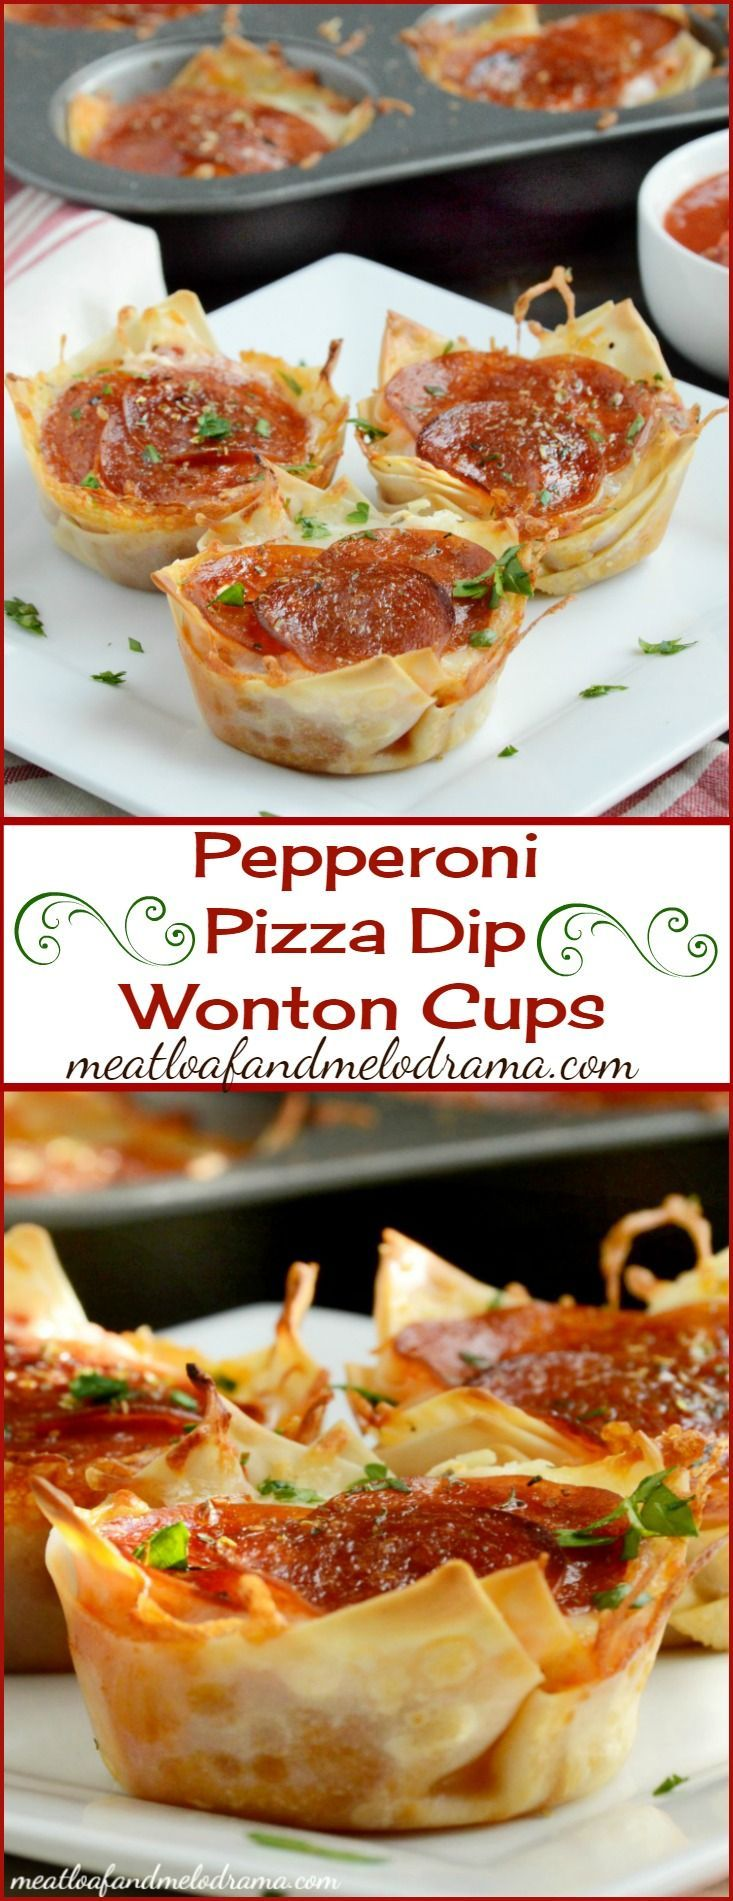 Pepperoni Pizza Dip Wonton Cups -- Perfect for game day snacks, appetizers or an easy dinner! Takes about 20 minutes to make!